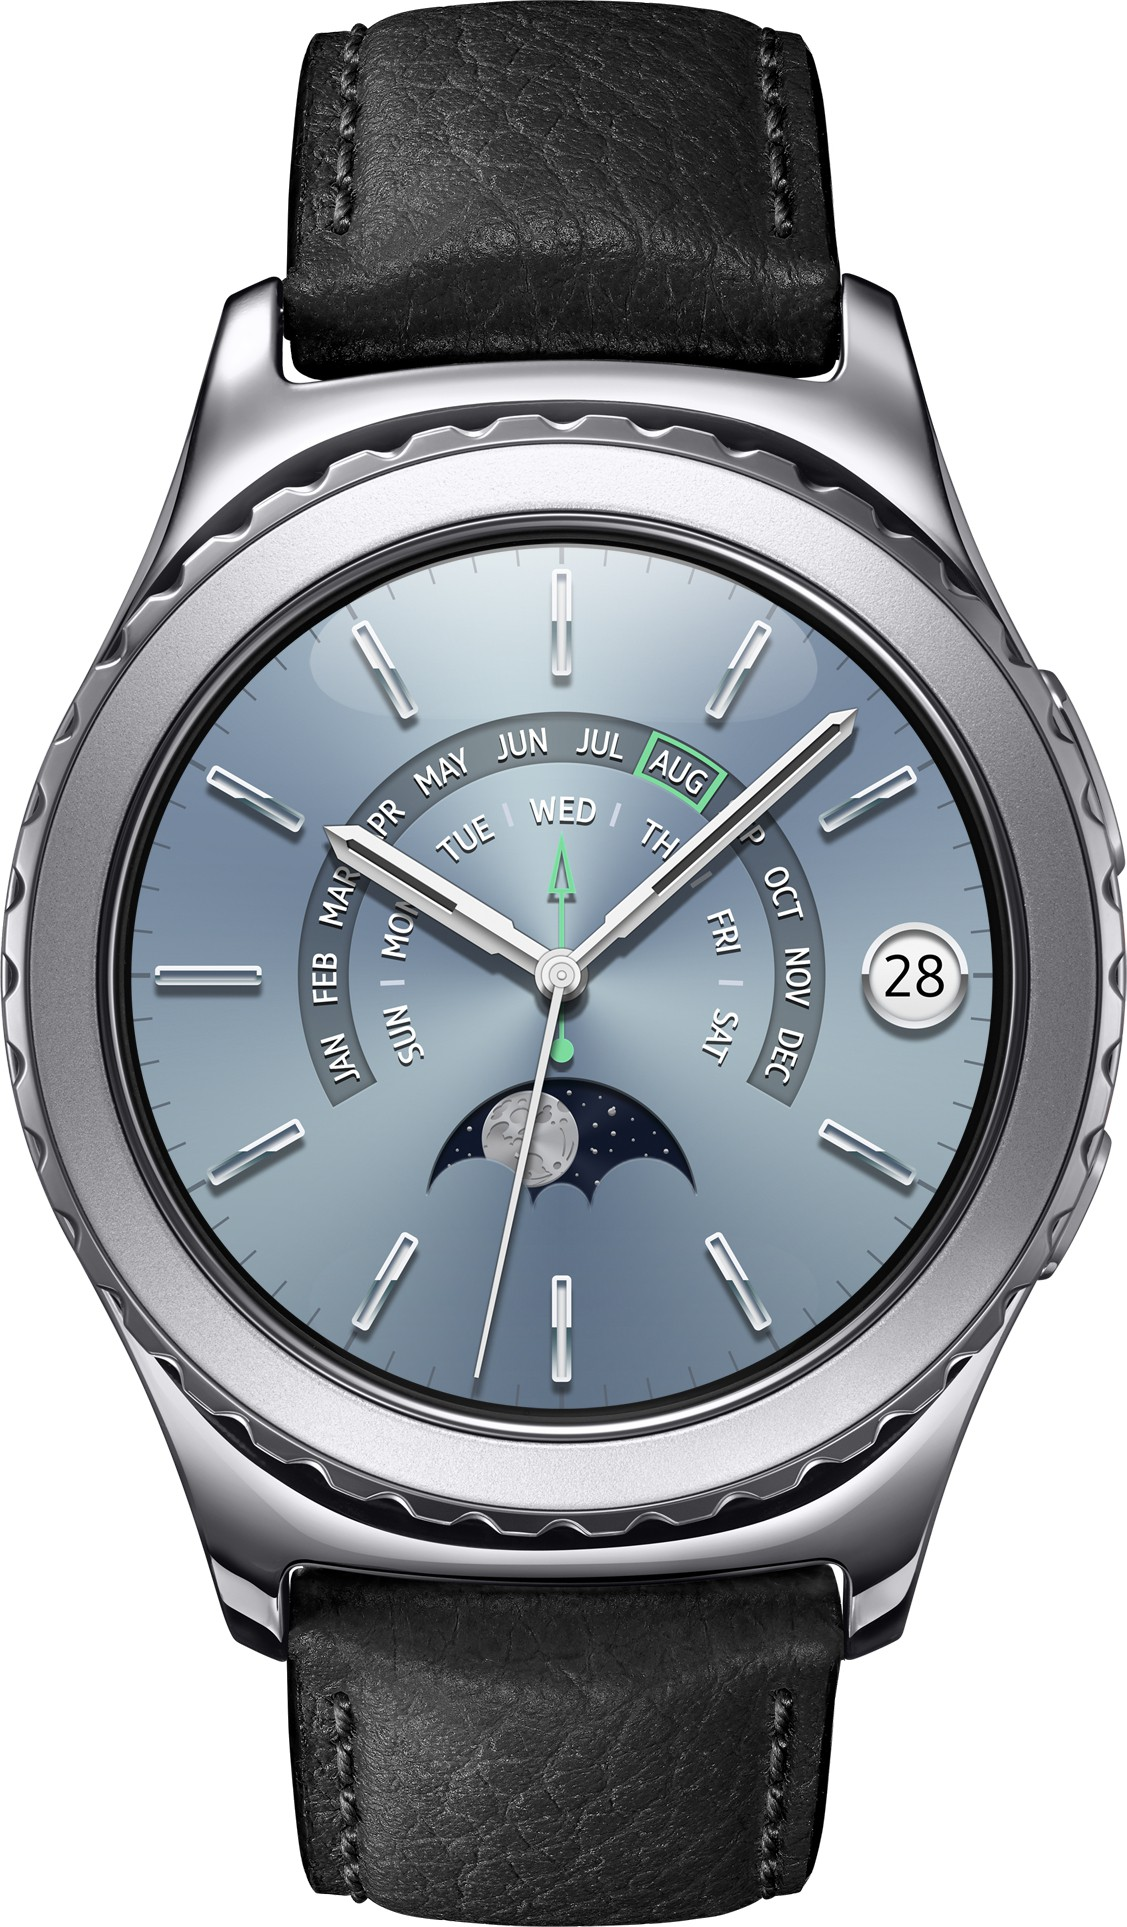 Deals - Bangalore - Samsung <br> Gear S2 Smartwatches<br> Category - wearable_smart_devices<br> Business - Flipkart.com